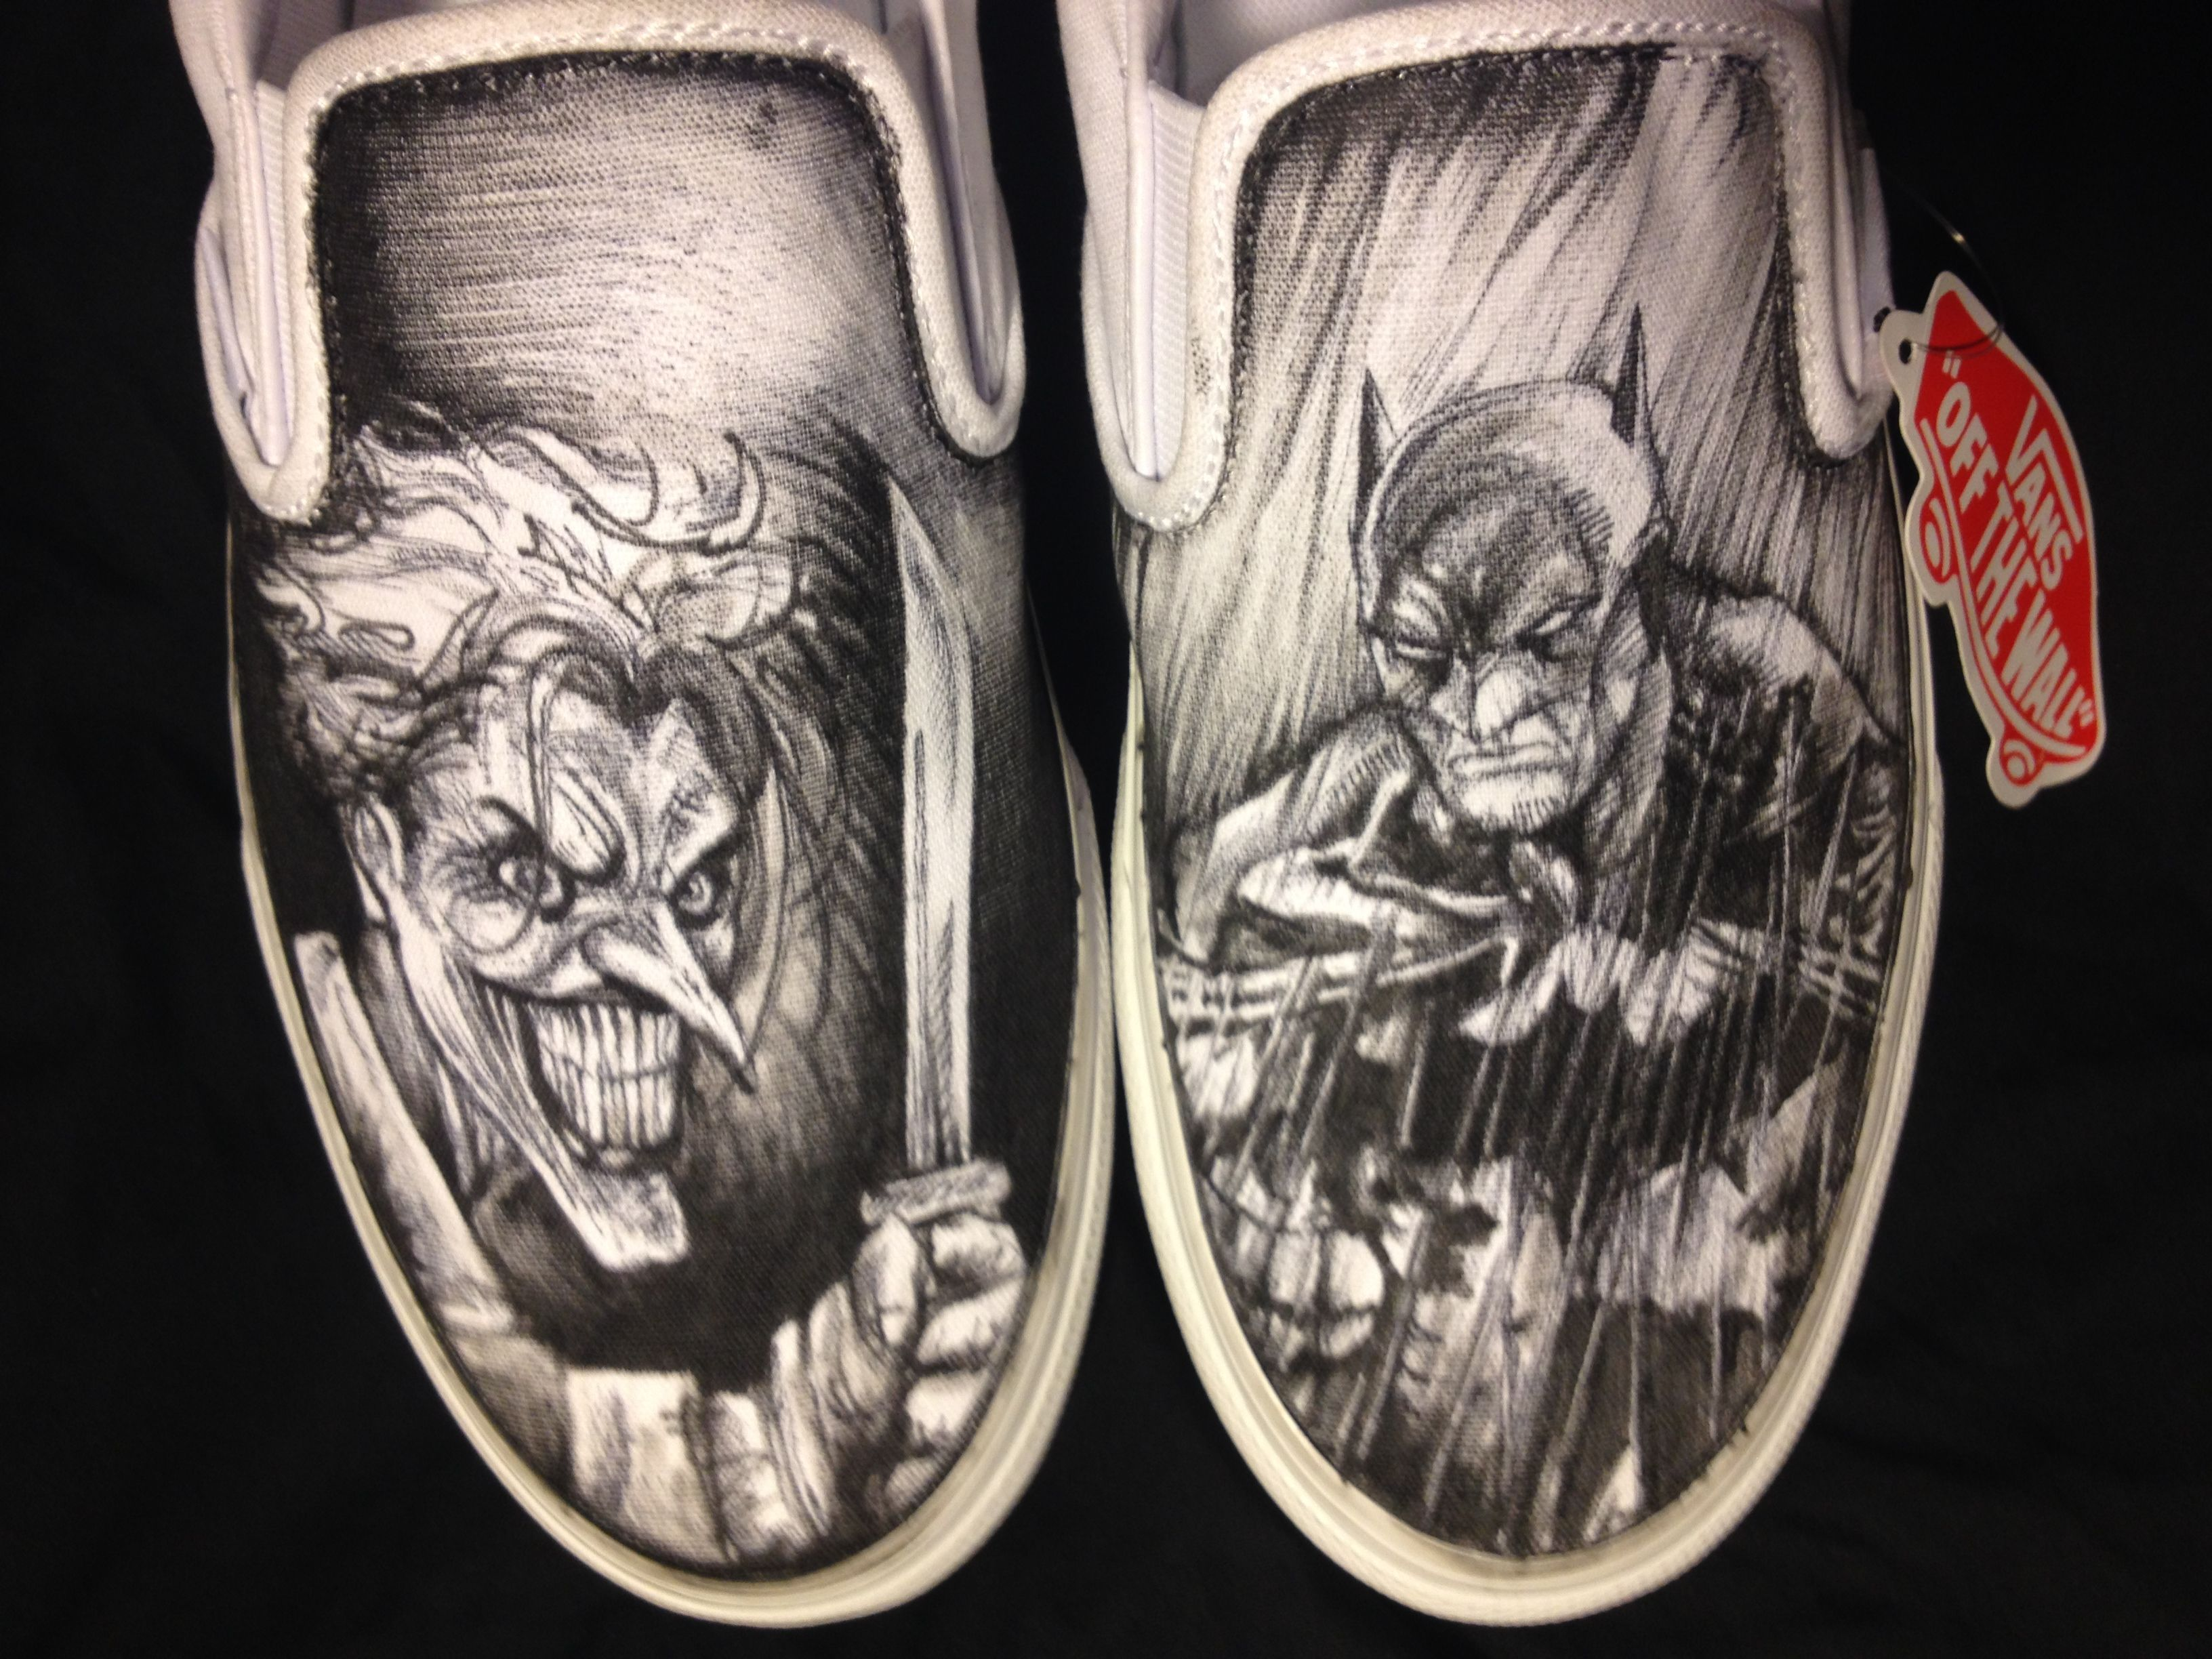 Drawn shoe custom drawn Hand And Drawn Handmade Shoes